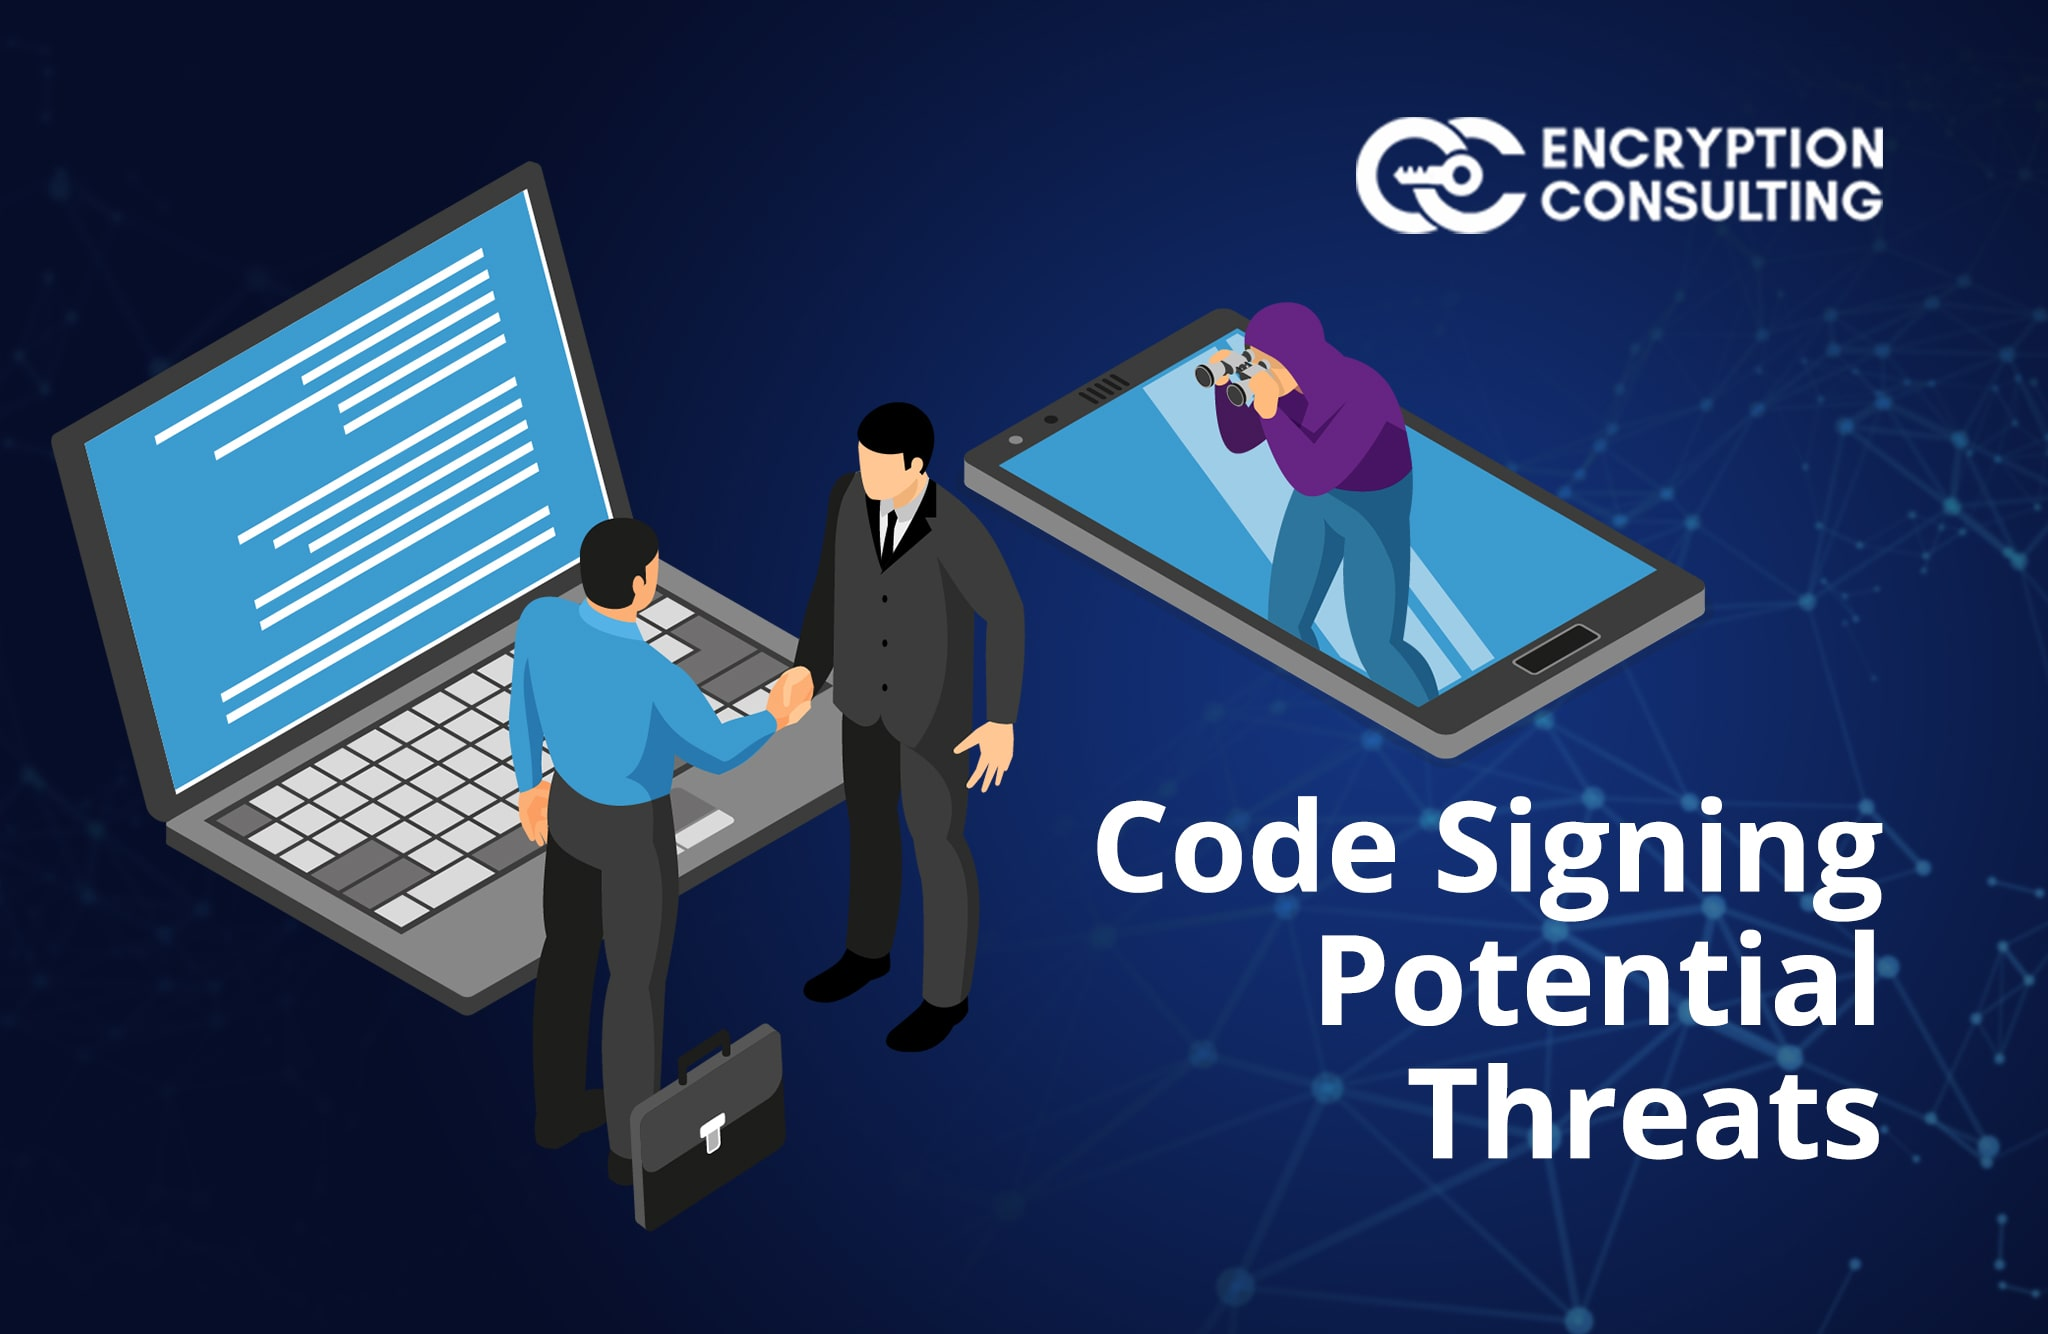 Code Signing Potential Threats